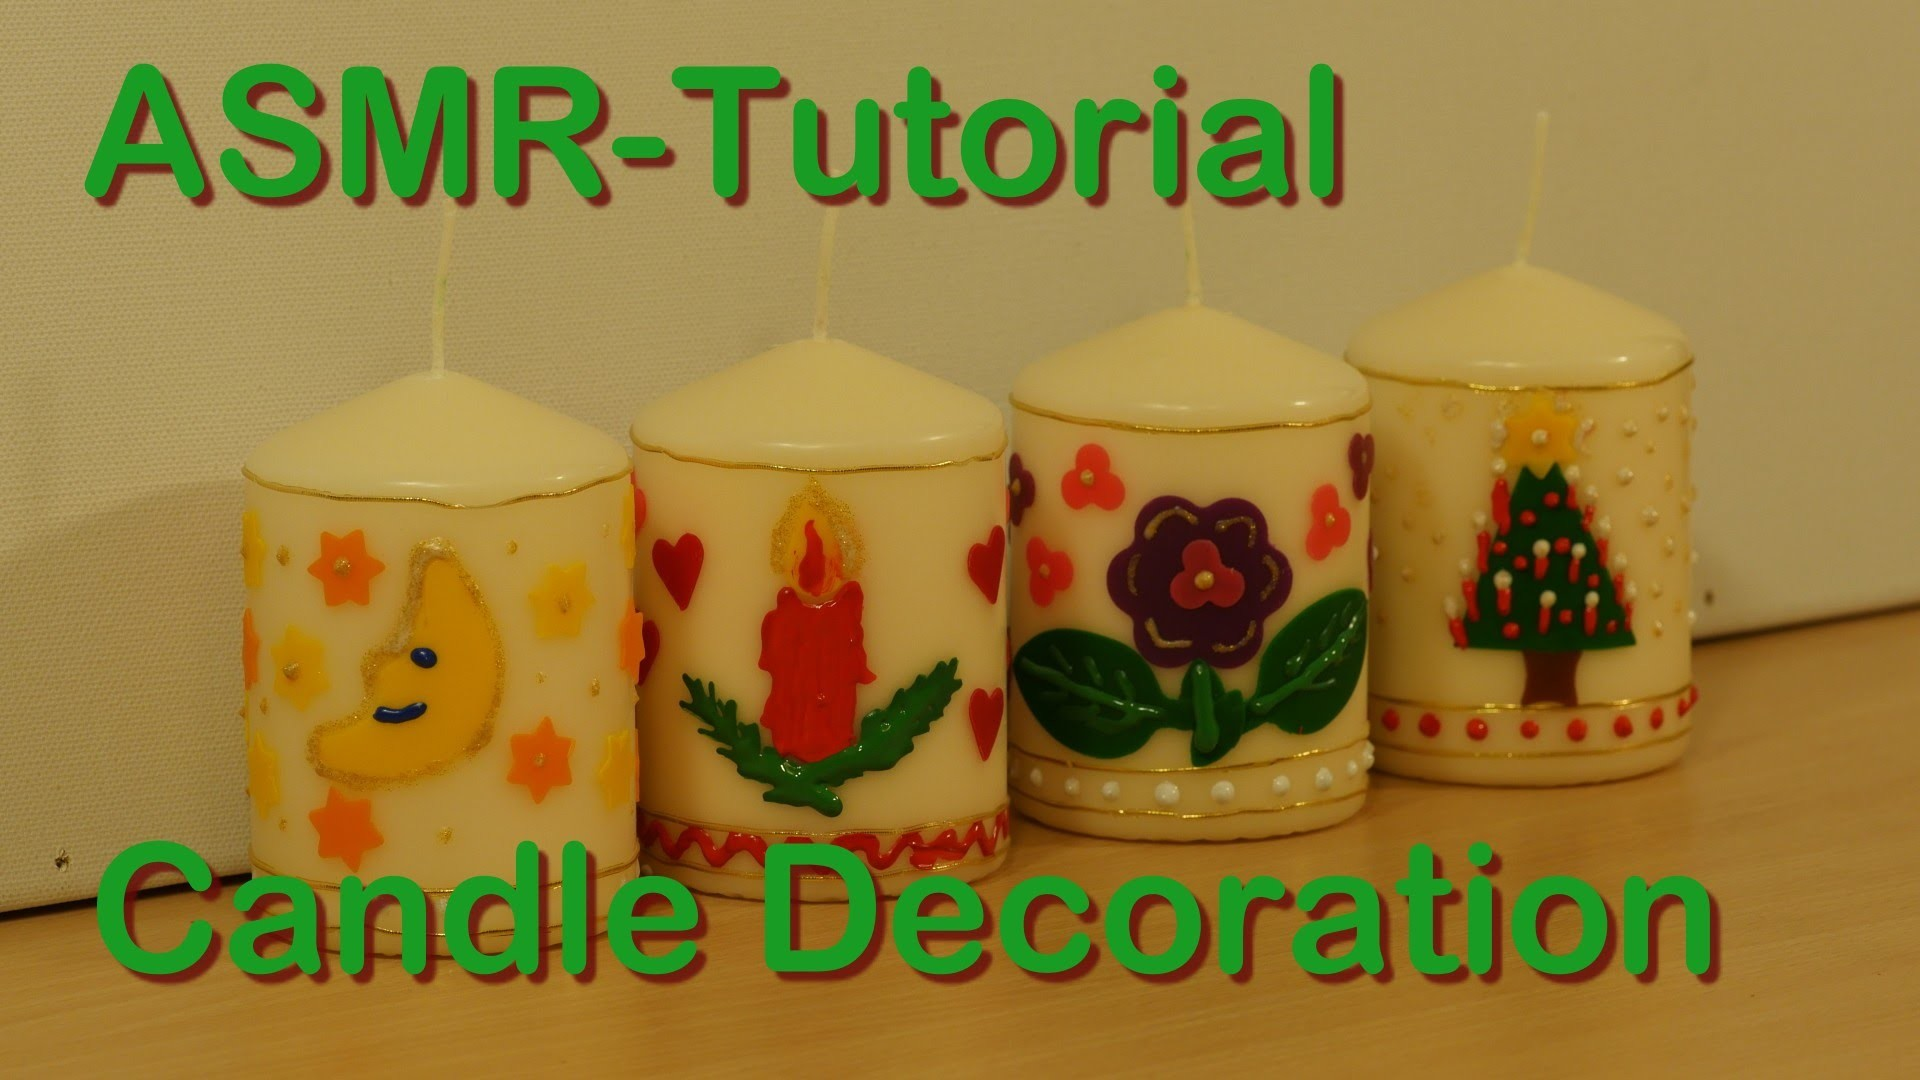 ASMR-Tutorial: Candle decoration - Granny Tana shows how it's done - soft spoken